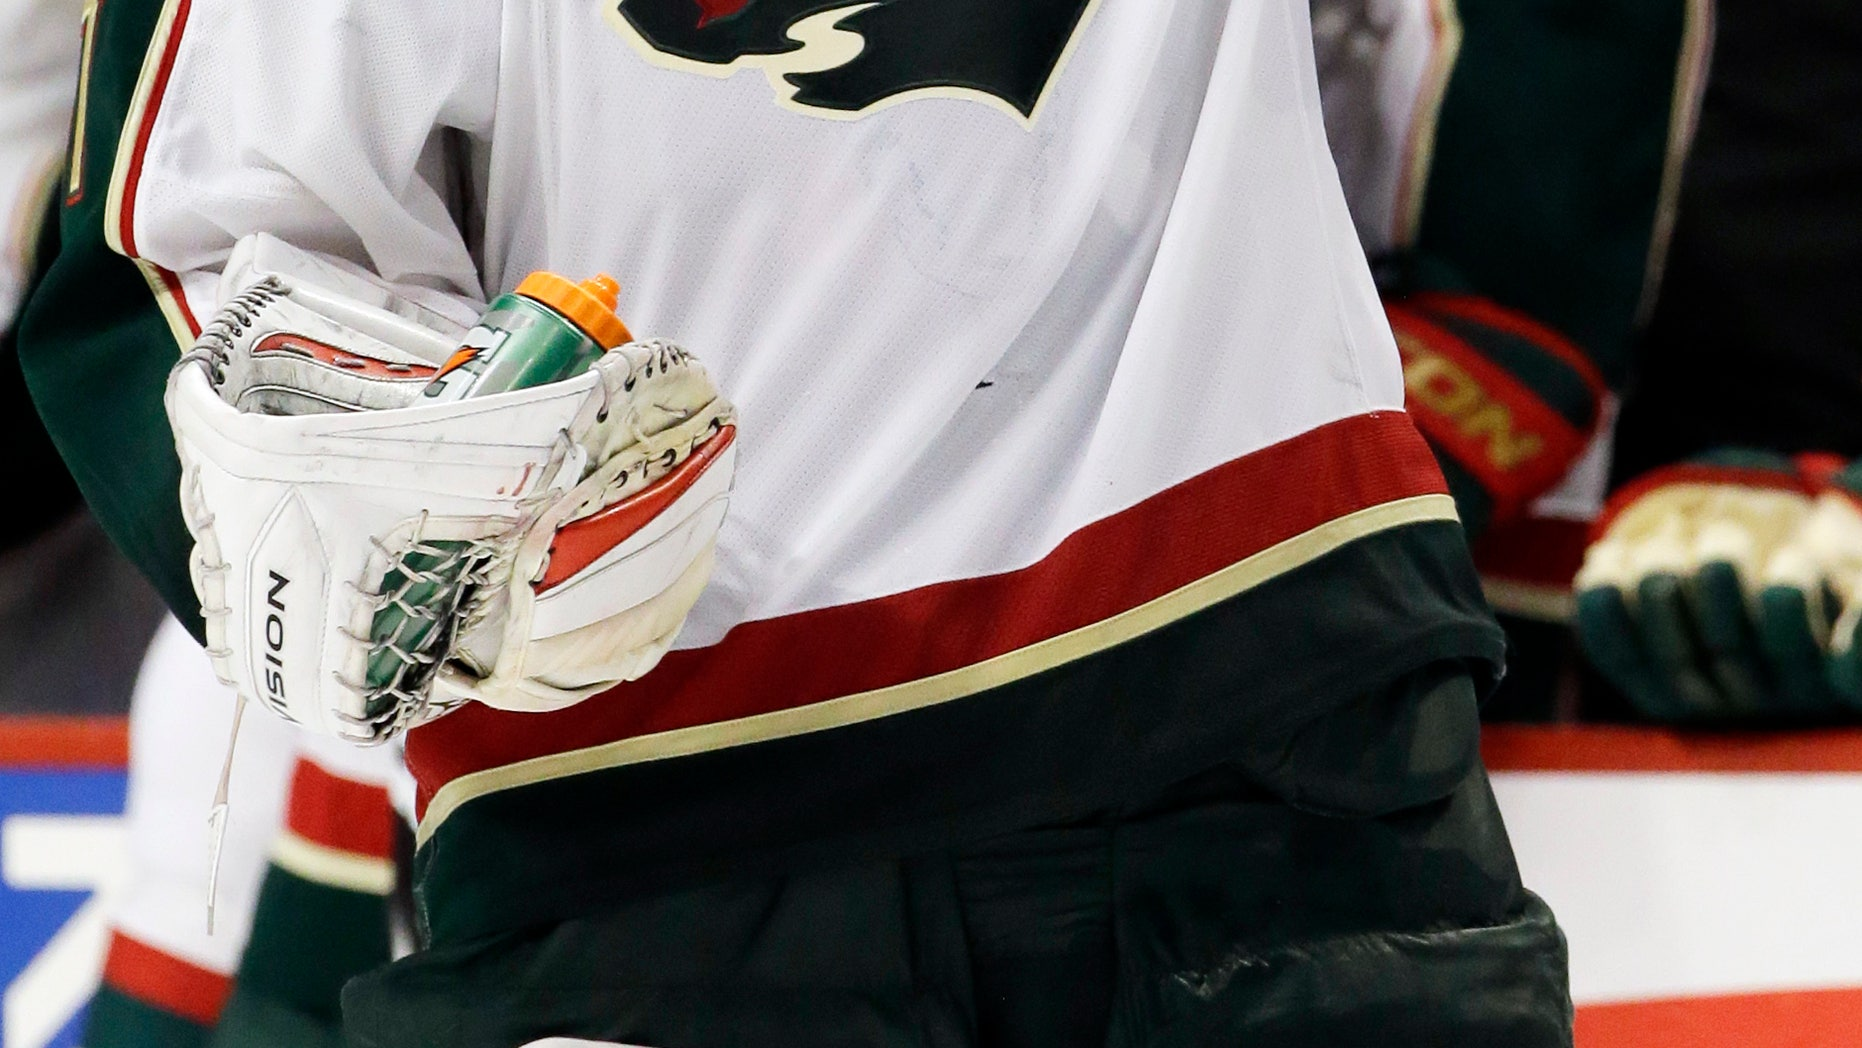 Minnesota Wild goalie Josh Harding puts on his helmet on during the second period of Game 2 of an NHL hockey Stanley Cup first-round playoff series against the Chicago Blackhawks in Chicago, Friday, May 3, 2013. (AP Photo/Nam Y. Huh)